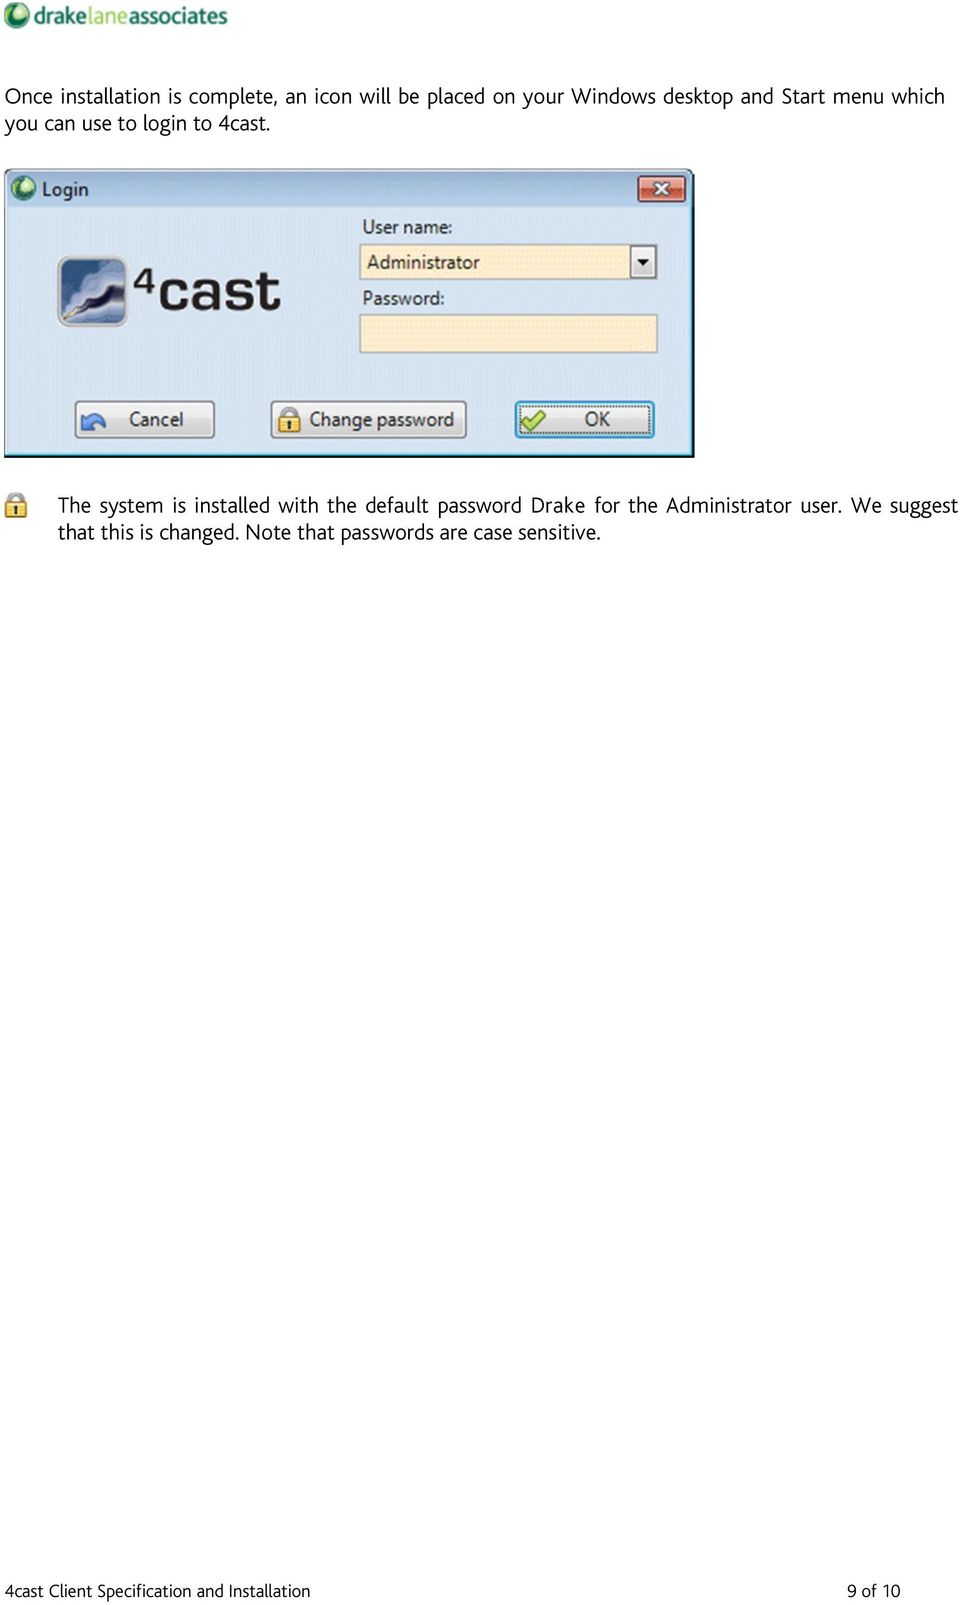 The system is installed with the default password Drake for the Administrator user.